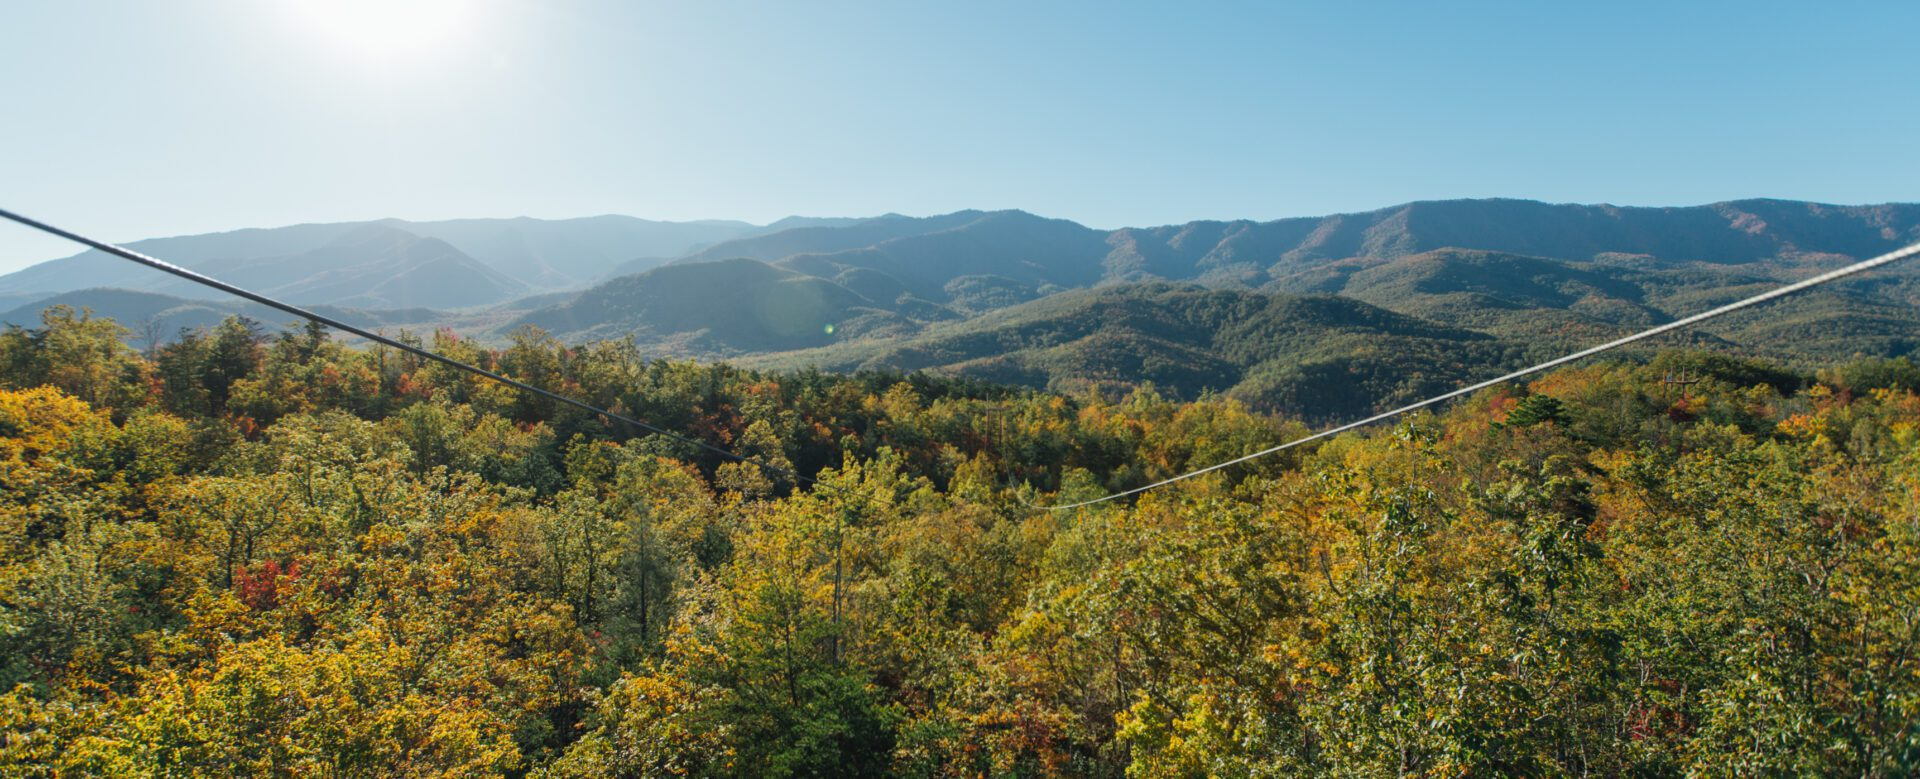 What to Expect on Our Mountaintop Zipline Tour in the Smoky Mountains